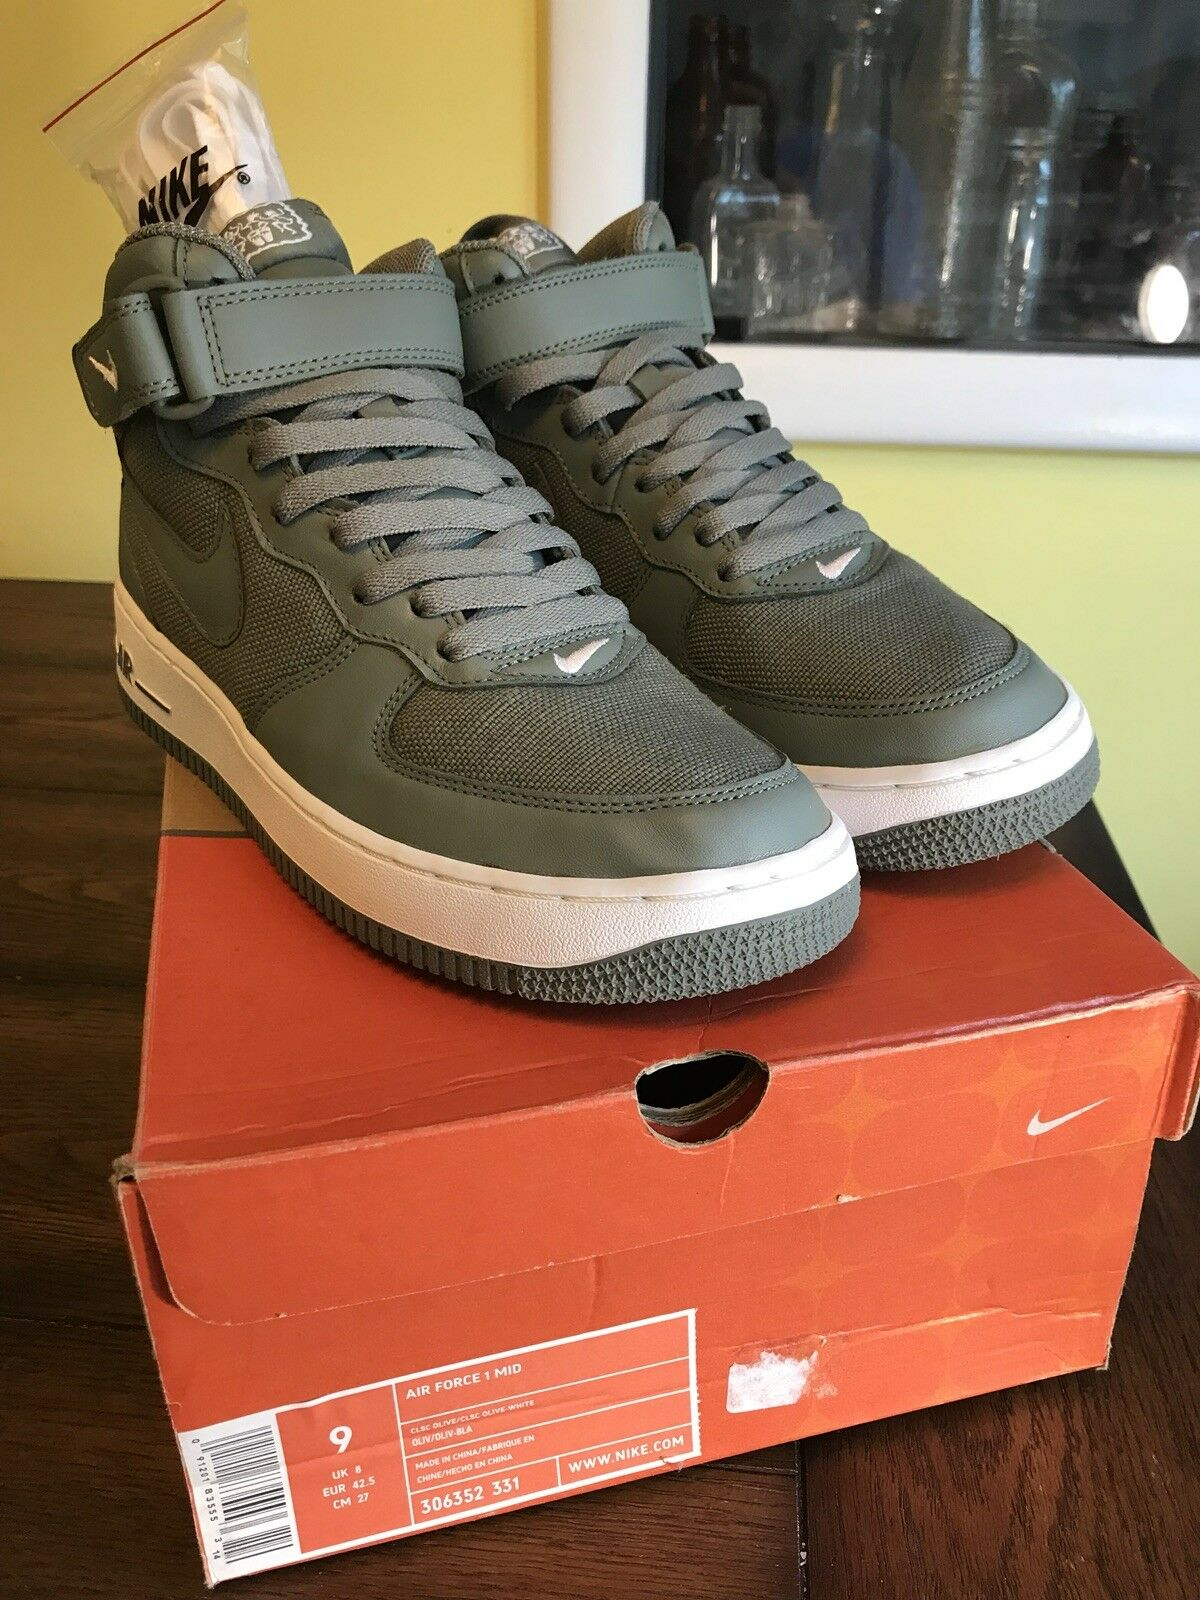 2005 Nike Air Force One Mid 306352 331